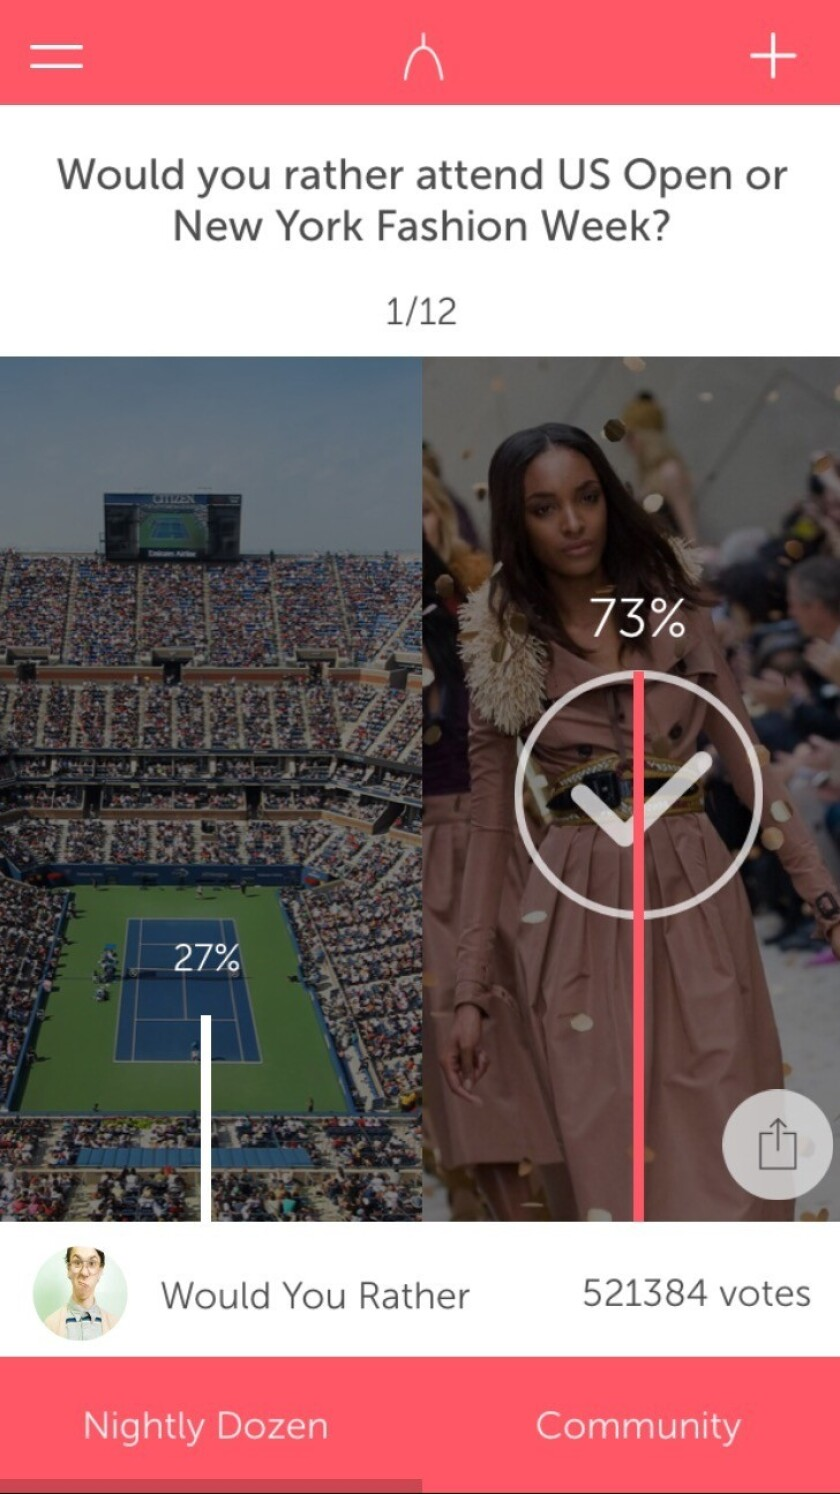 The Wishbone mobile app asks users to choose between two options on a variety of cultural questions.